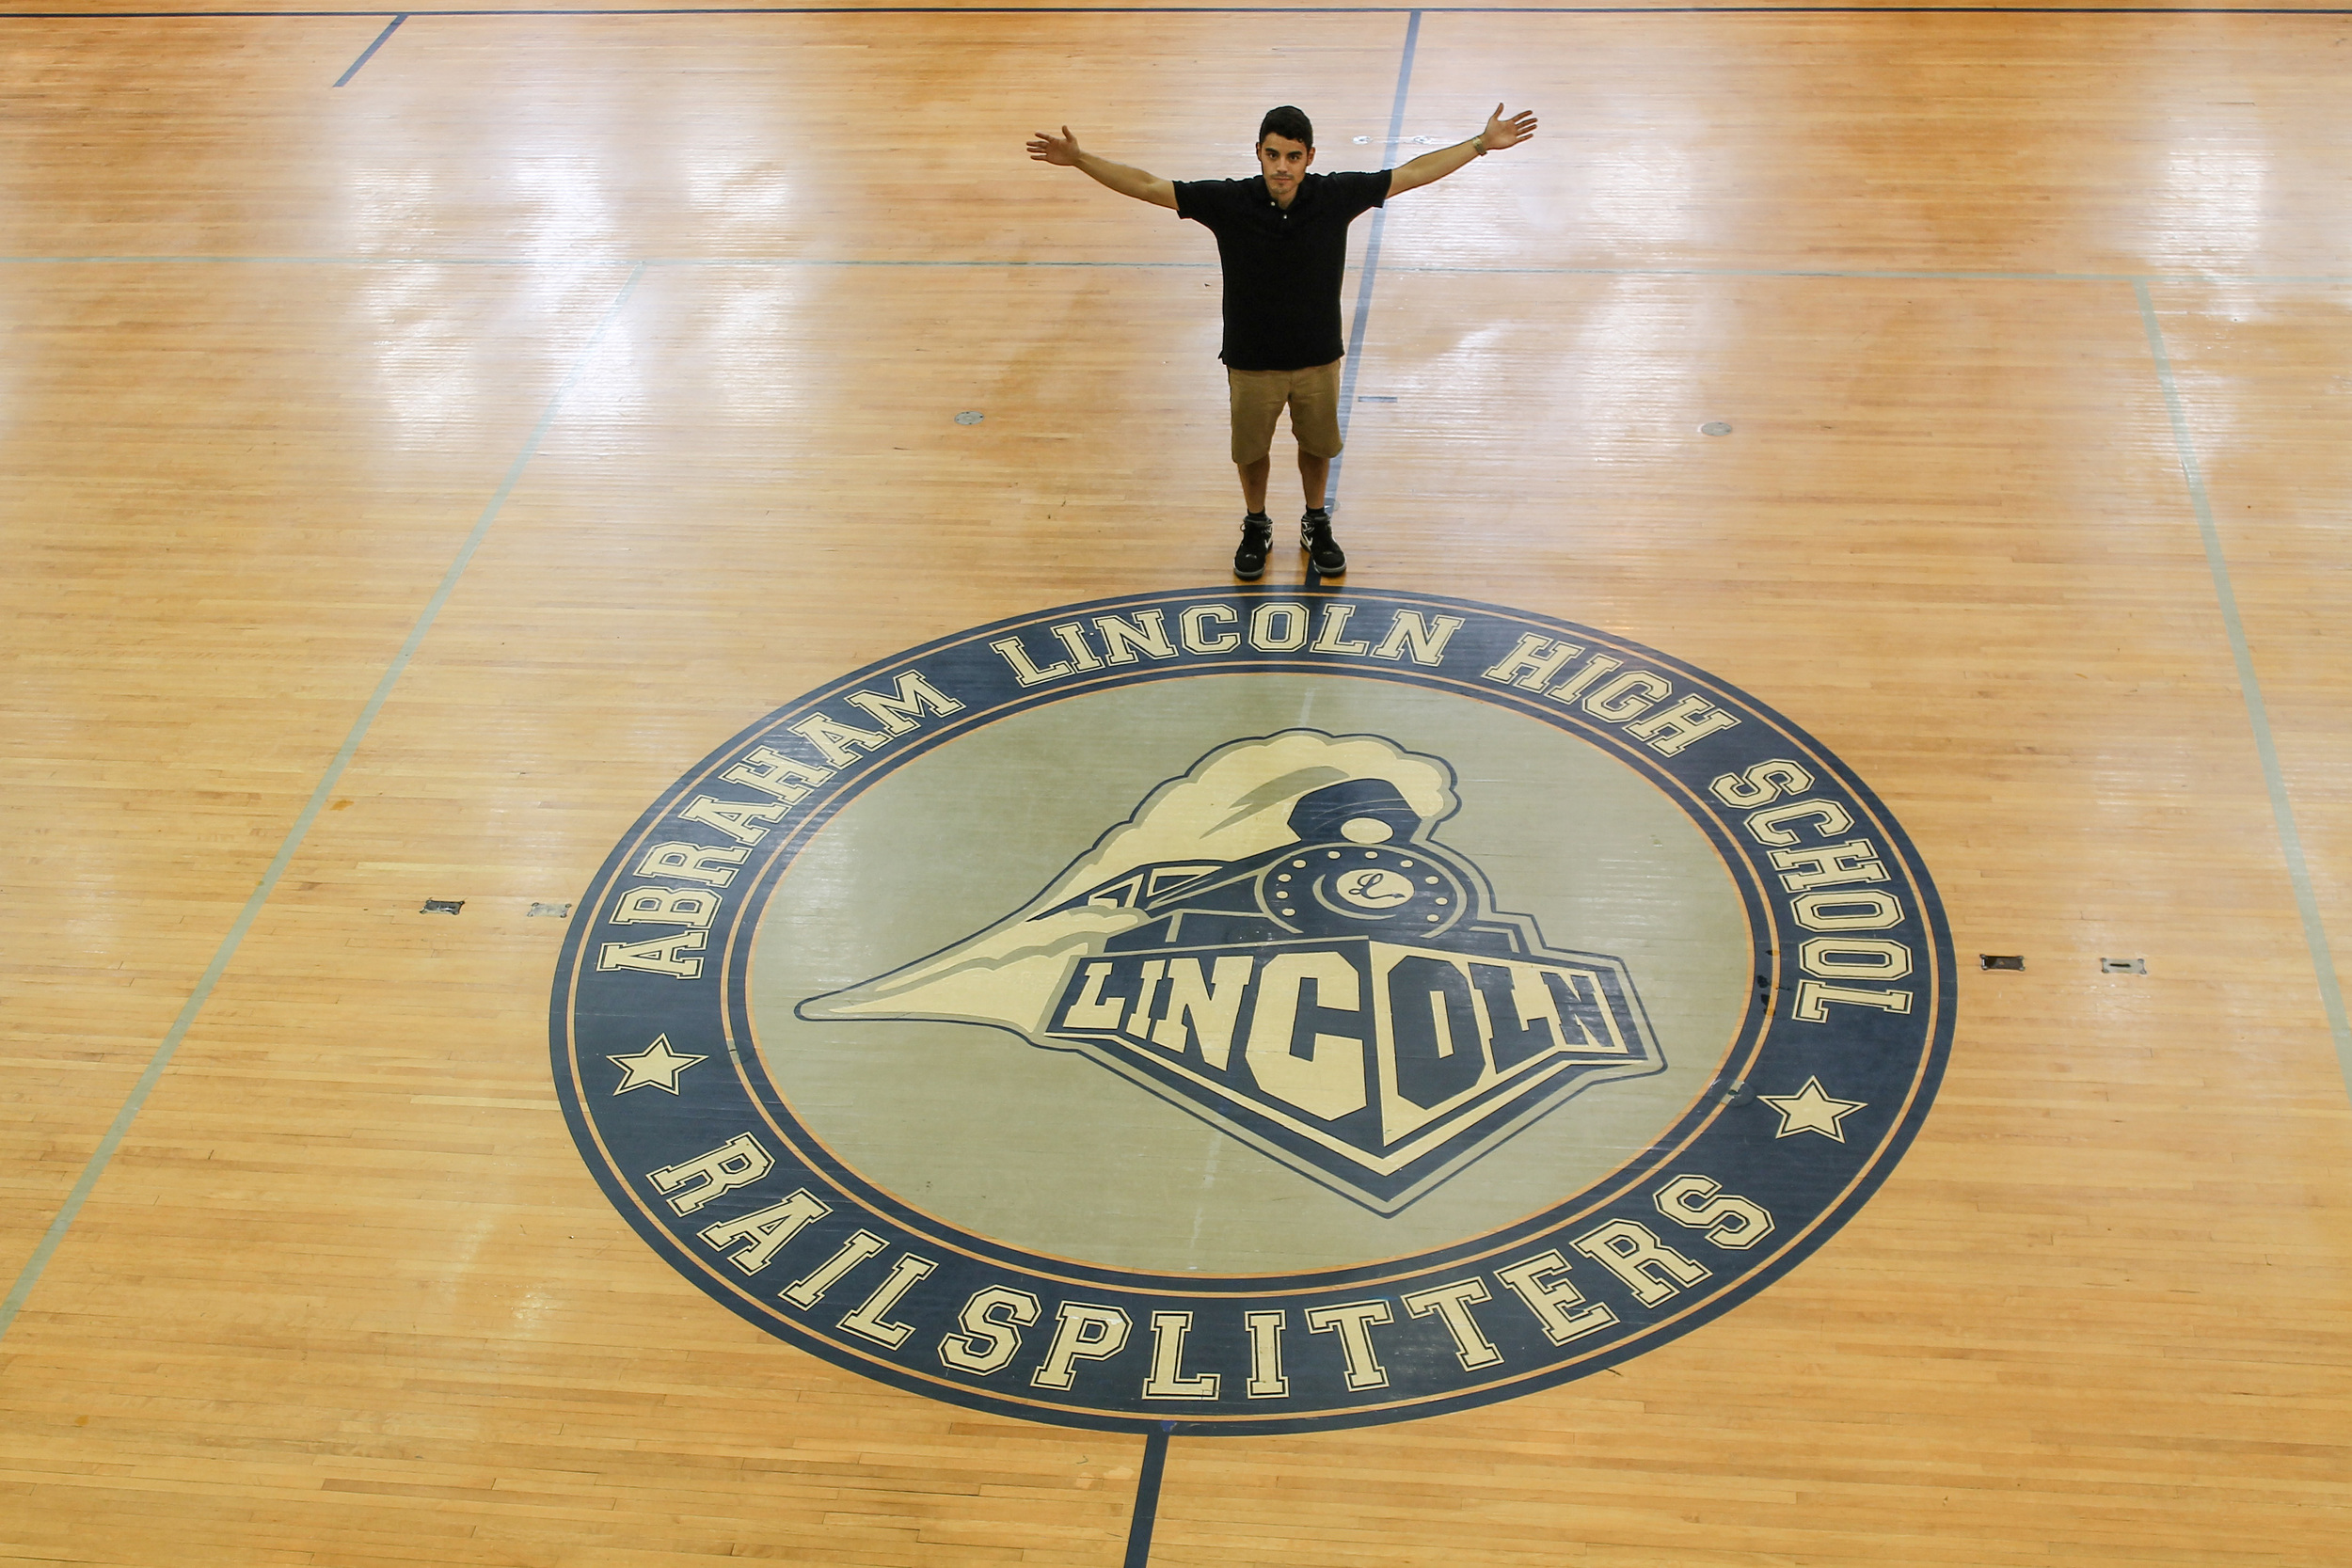 Me at center court @ Abraham Lincoln High School